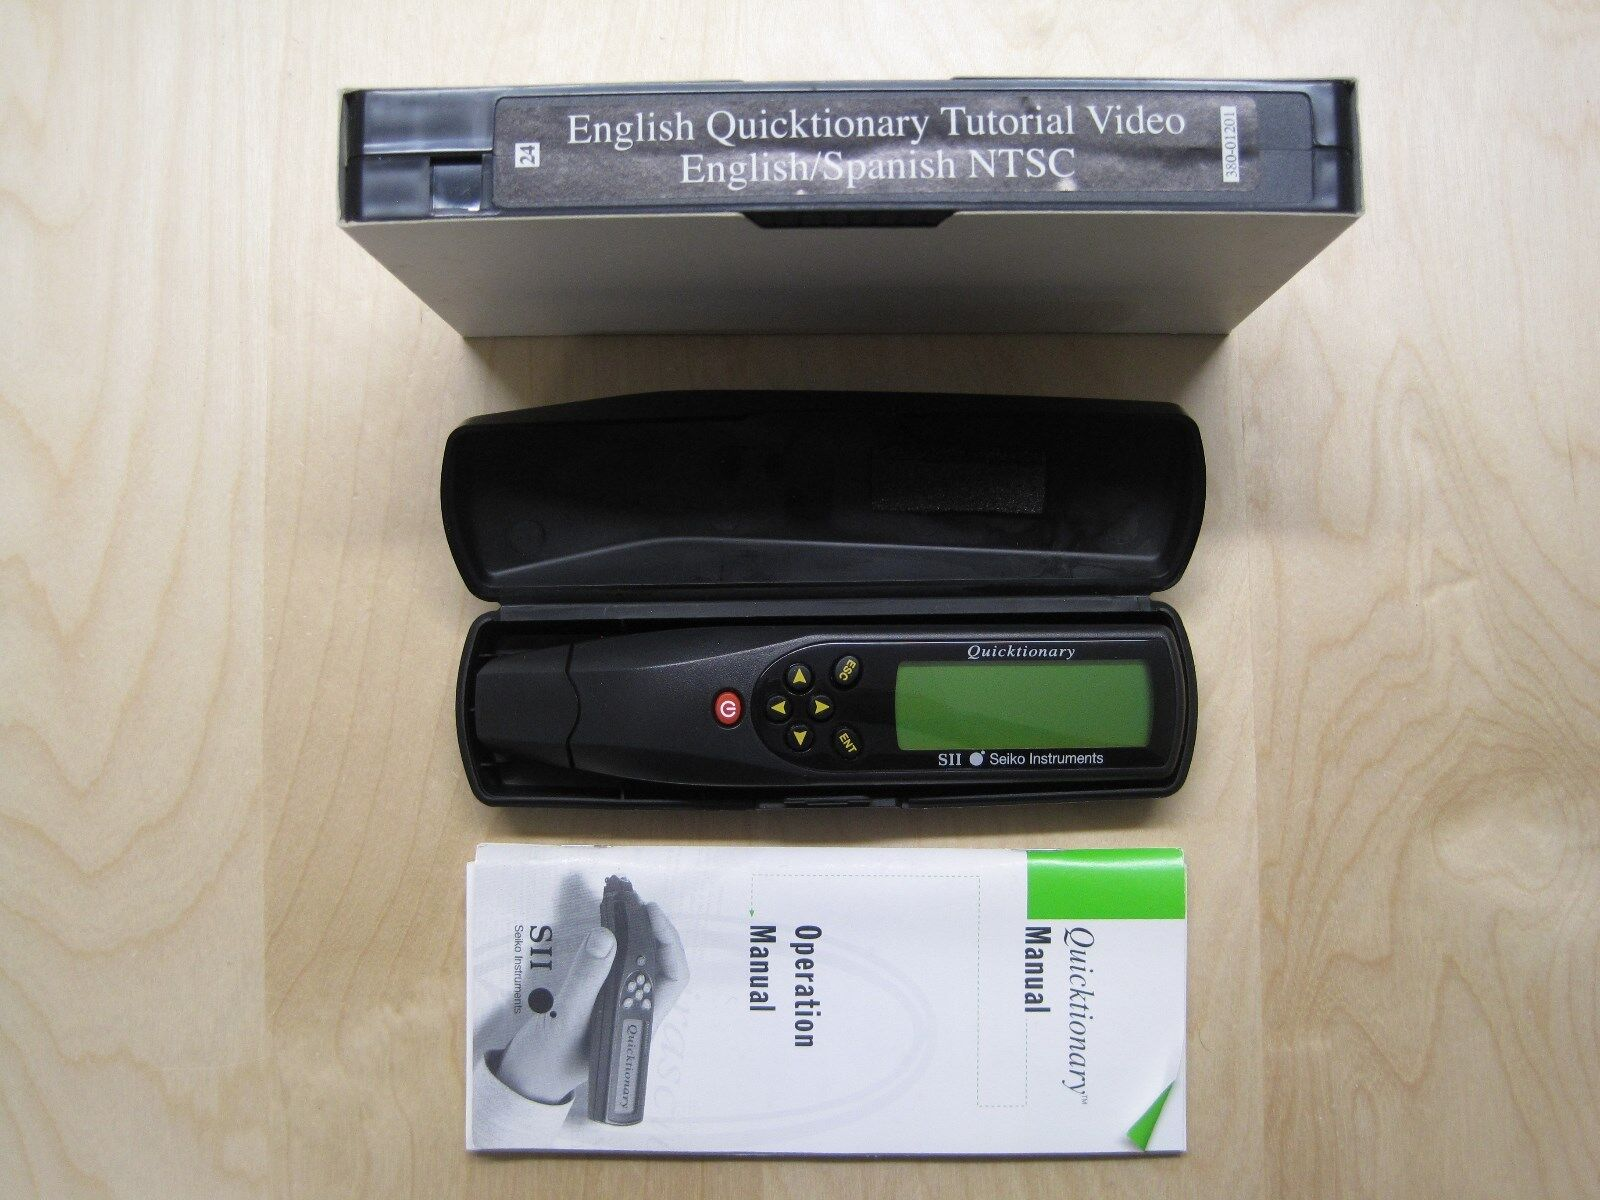 Seiko Instruments SII Quicktionary English Spanish Translator